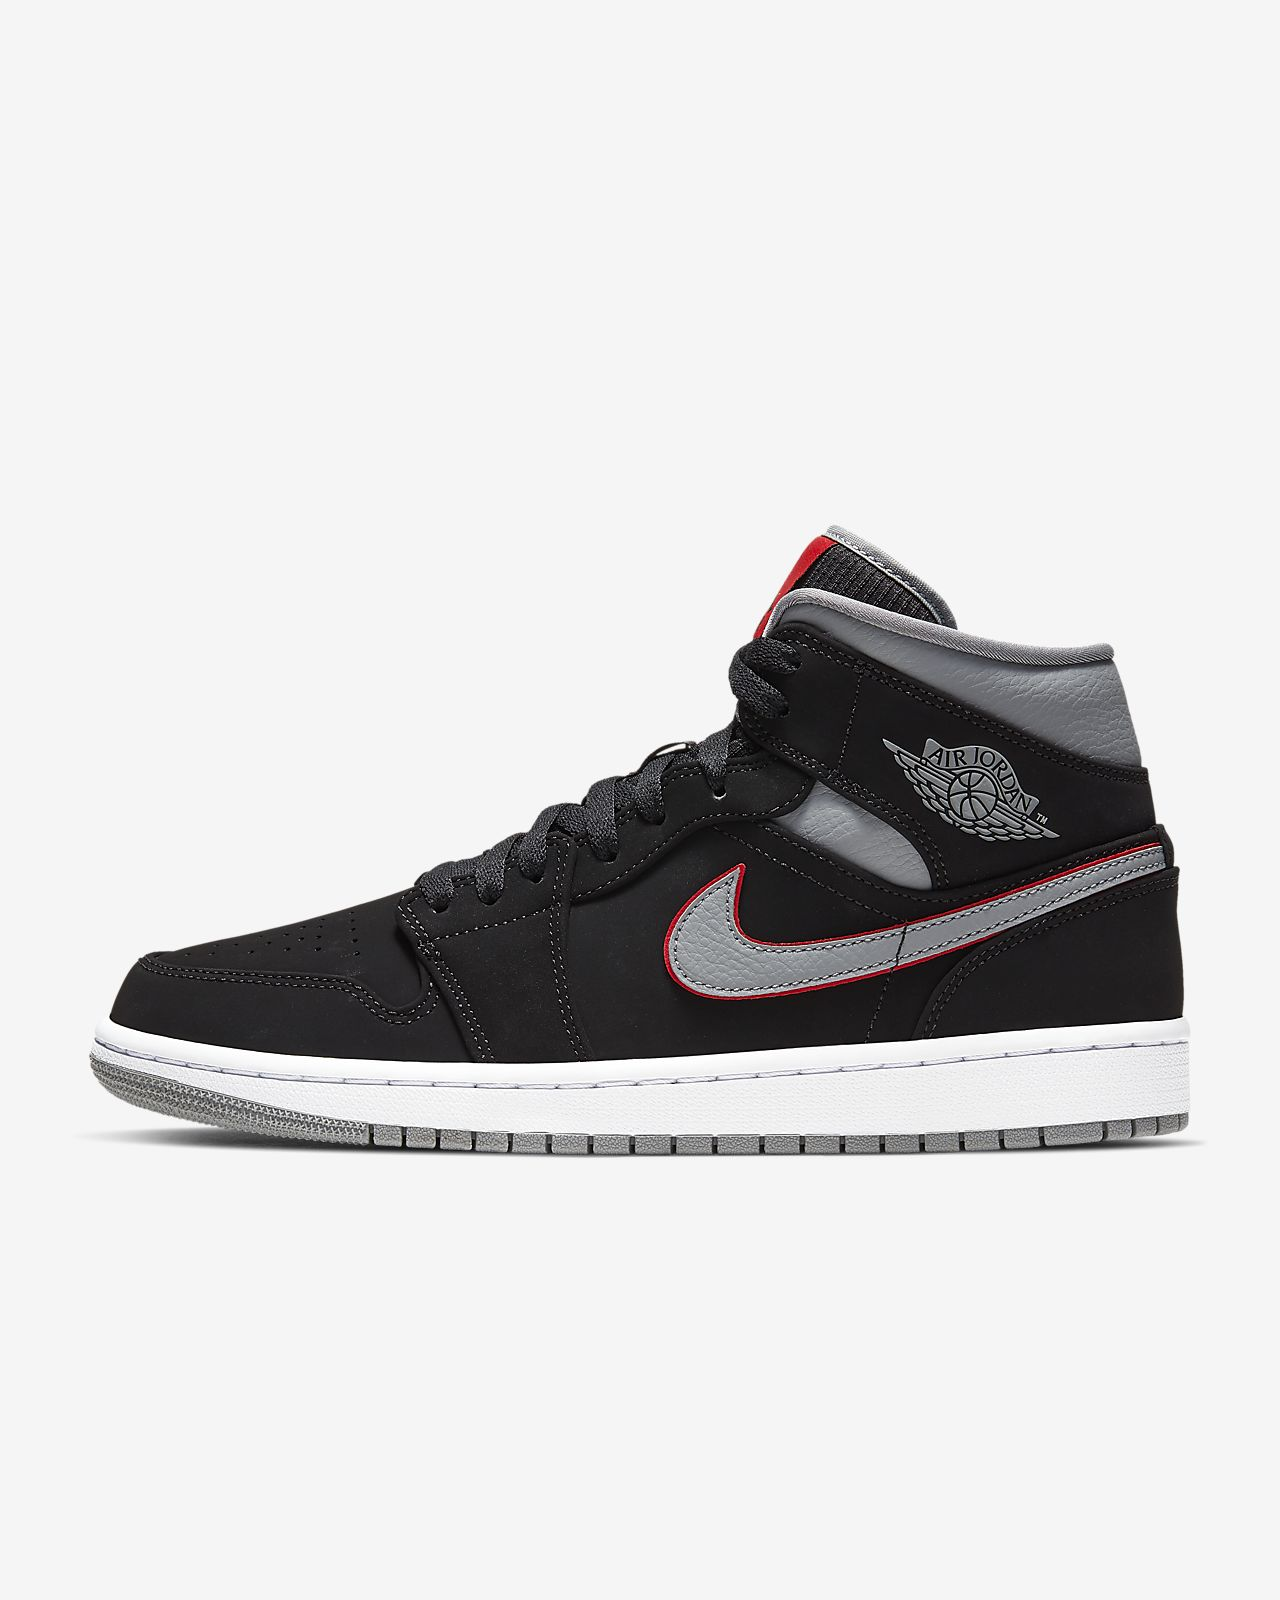 39a6e27b5a84 Air Jordan 1 Mid Men s Shoe. Nike.com AU